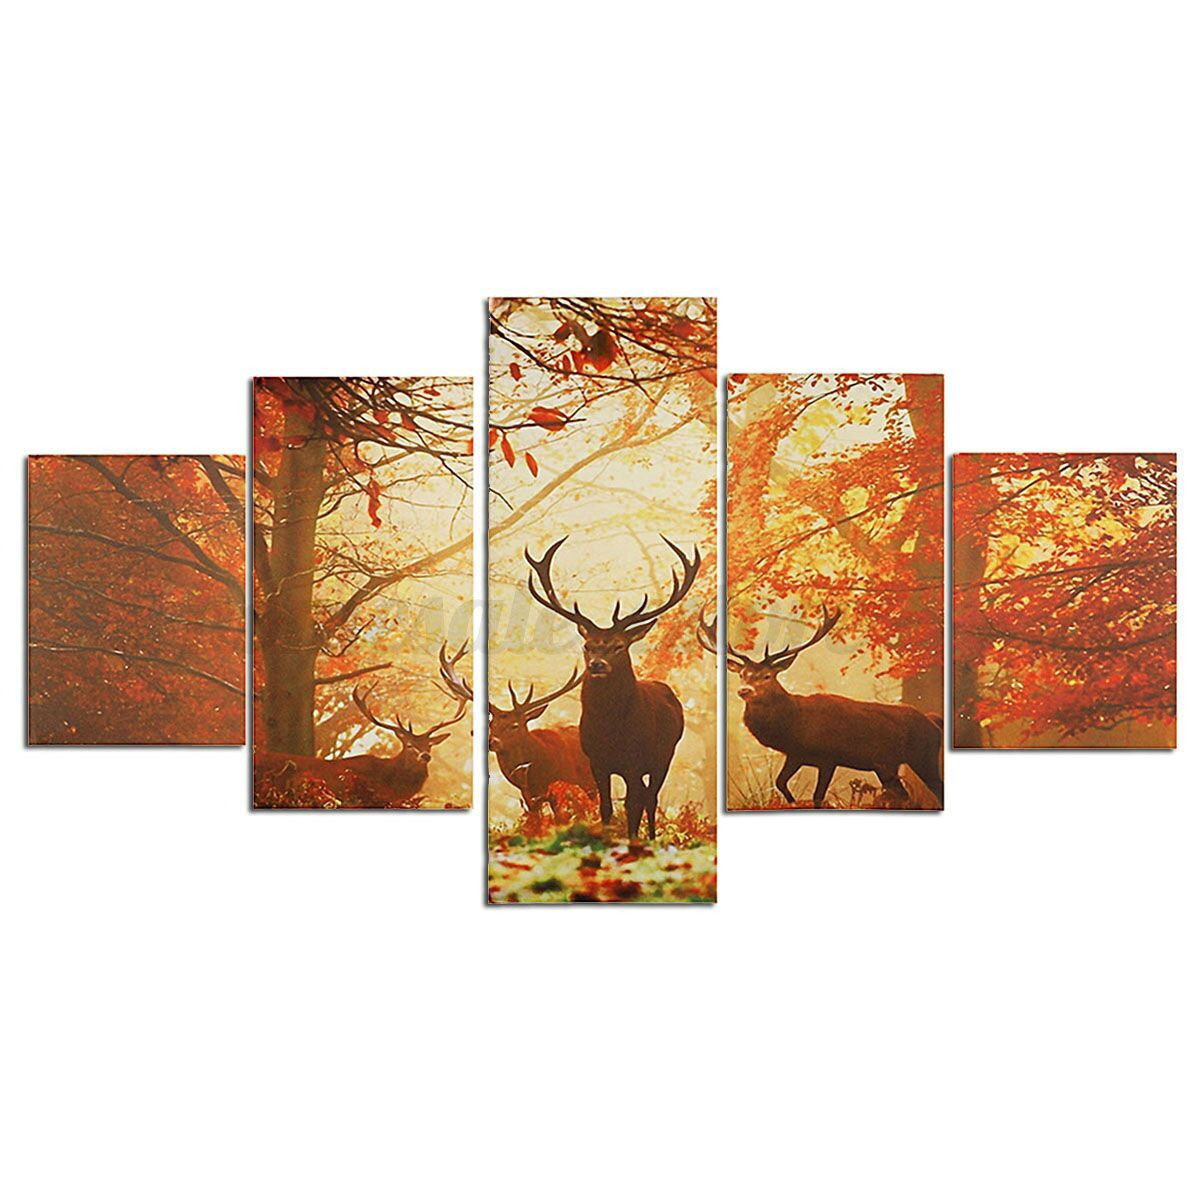 Hd Canvas Print Home Decor Wall Art Painting : Hd canvas print modern ry animal wall art oil